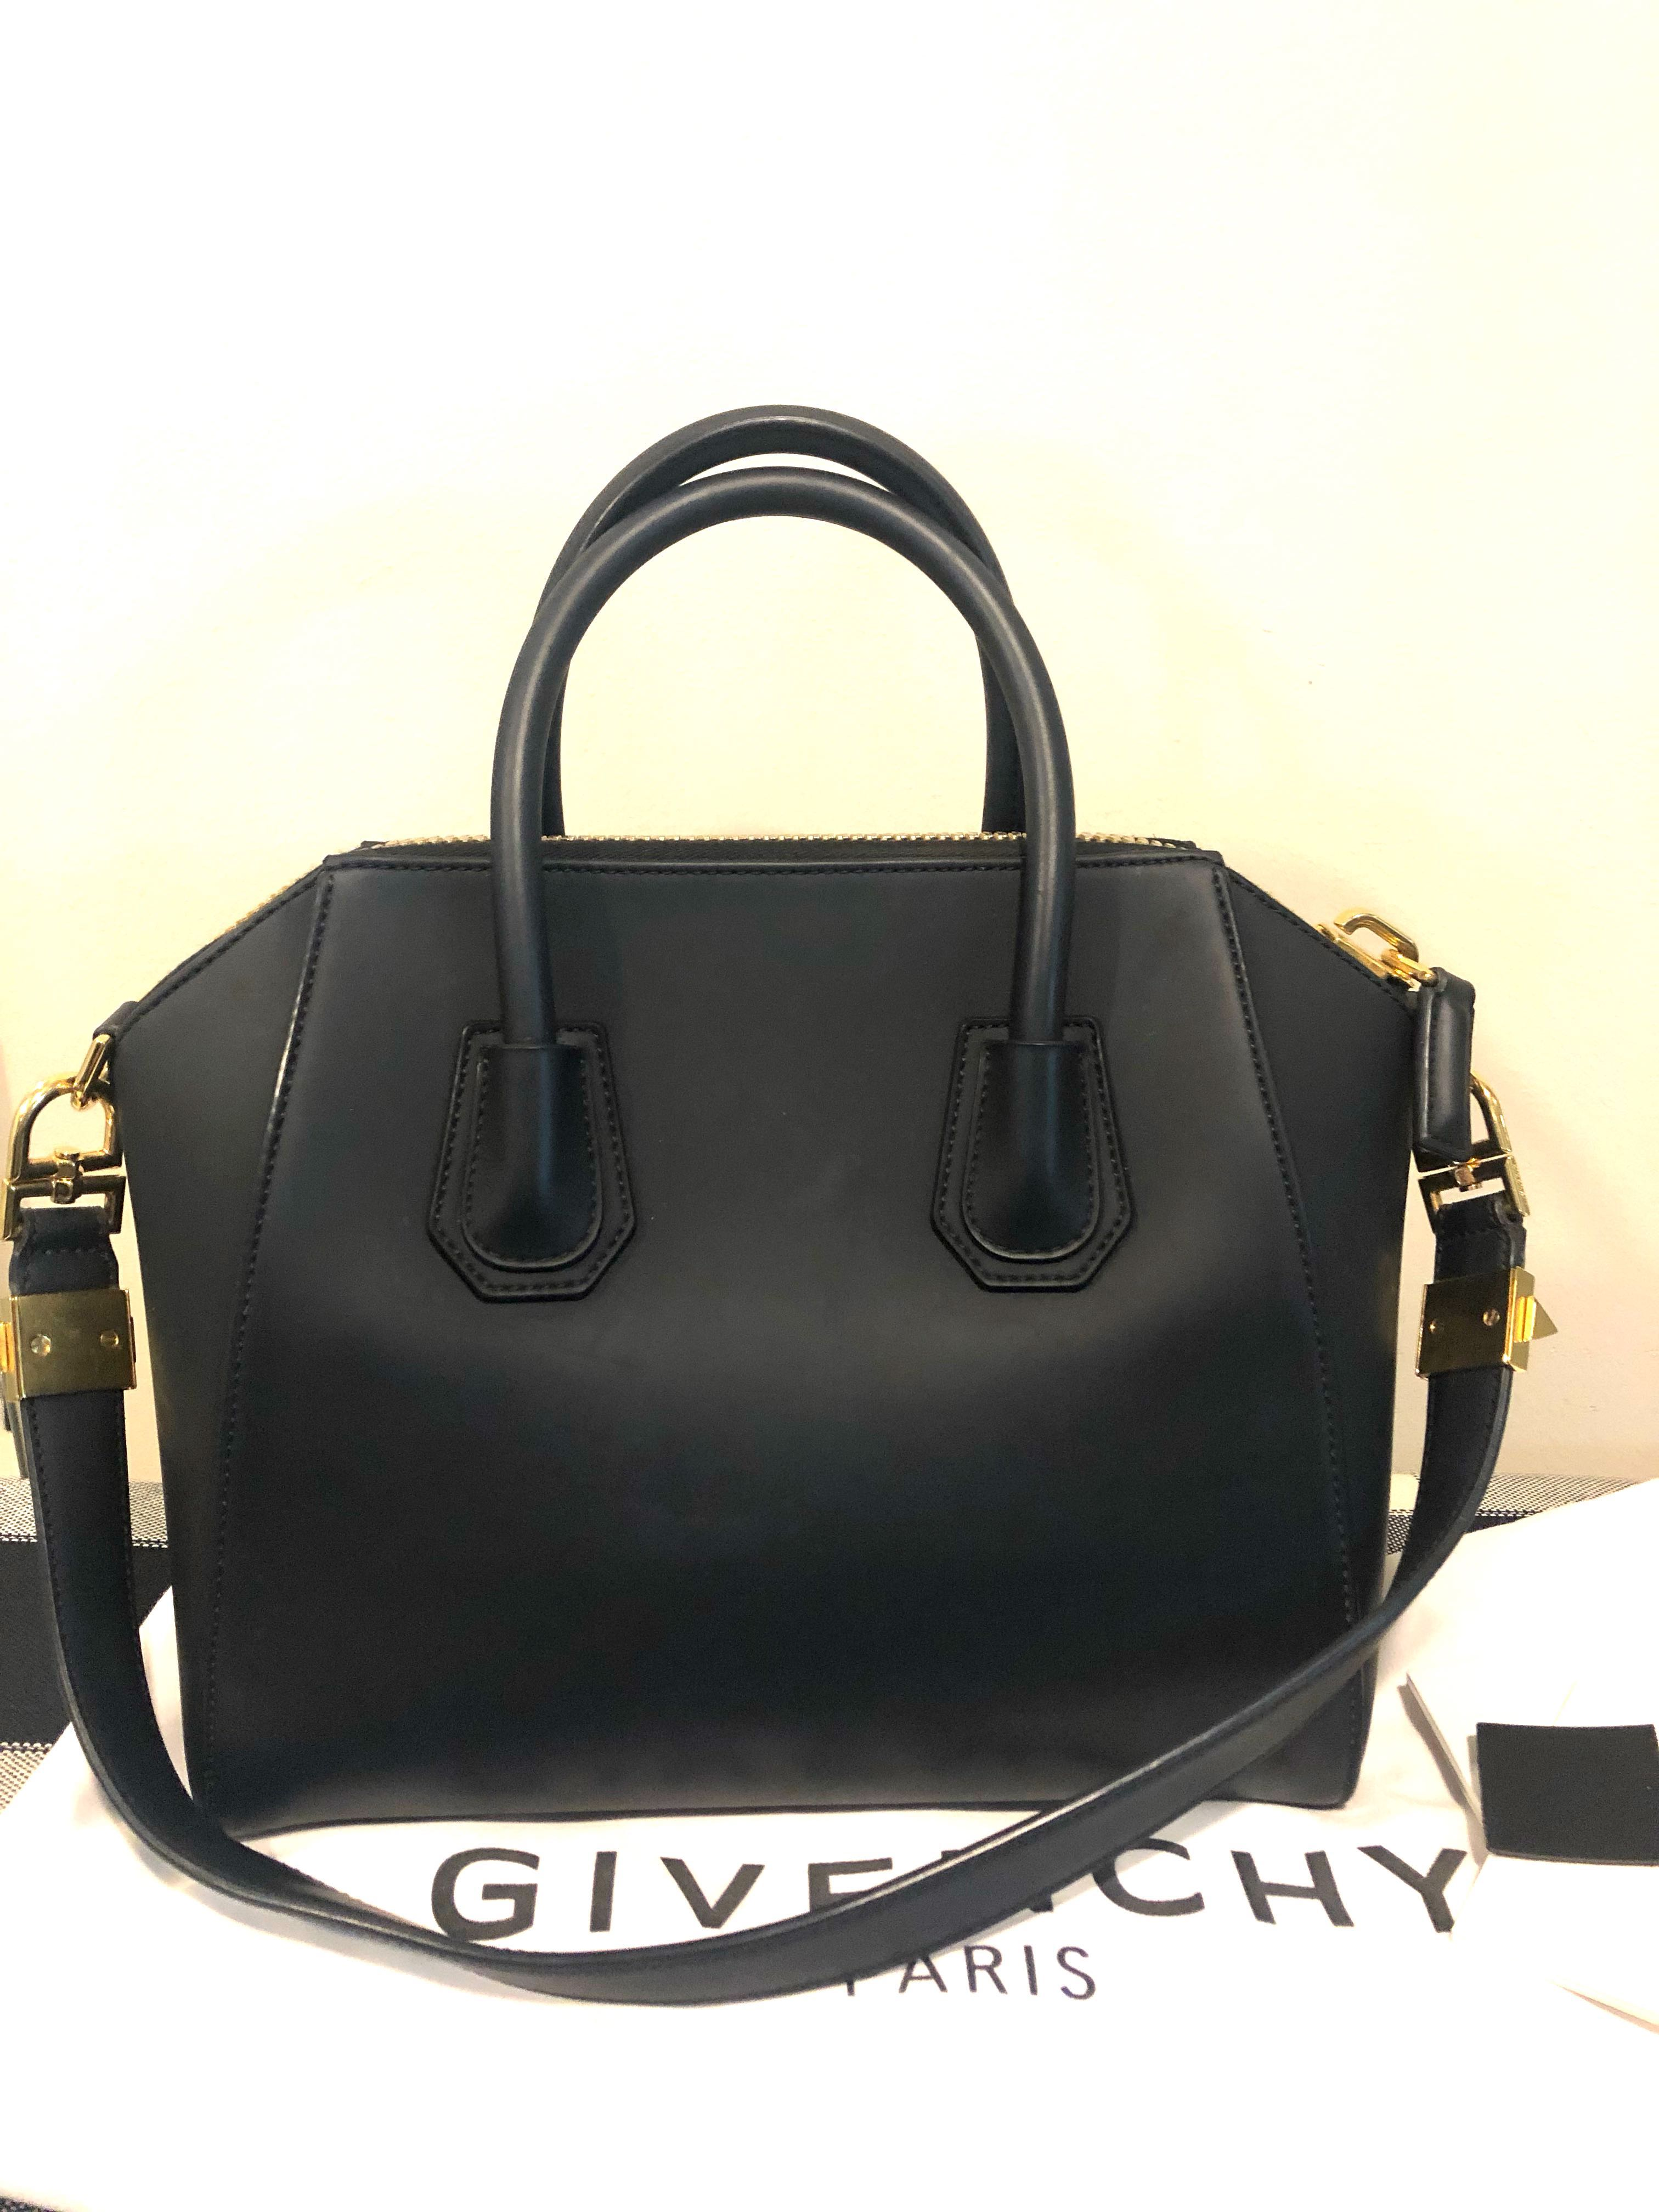 7bec8b86d32 Givenchy Antigona Small, Luxury, Bags & Wallets, Handbags on Carousell